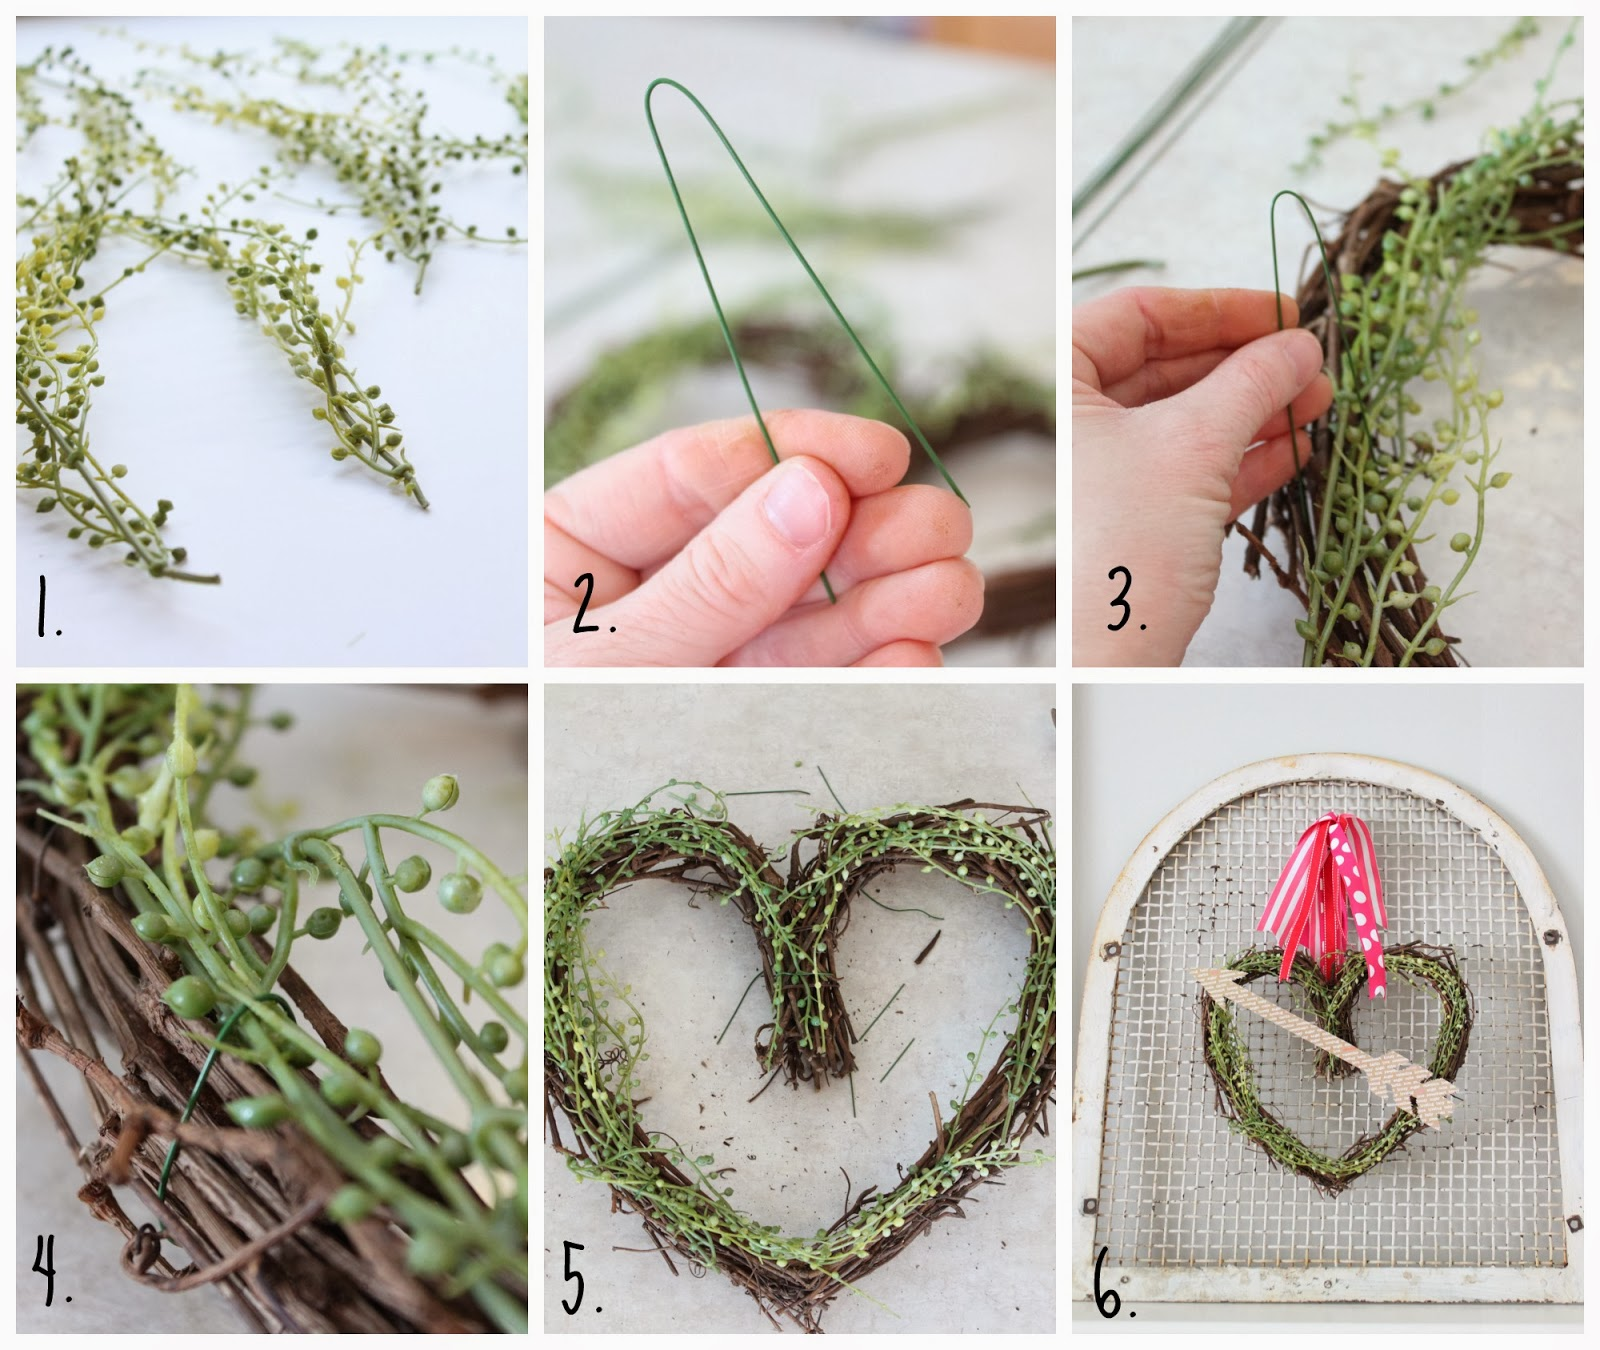 The step by step tutorial on how to put the wreath together.